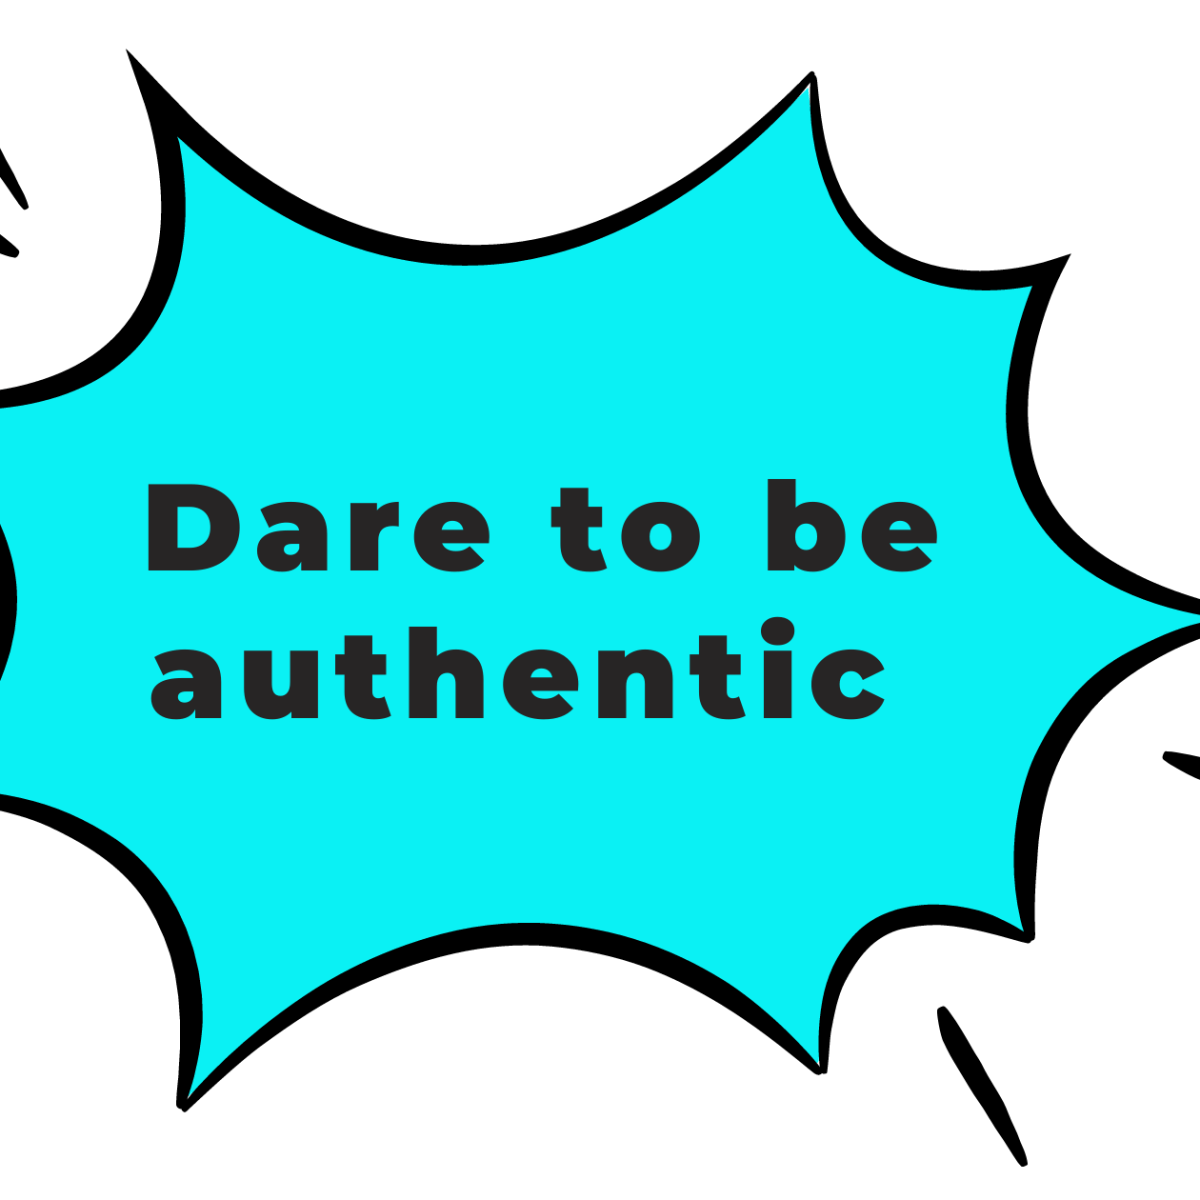 Dare to be authentic quote for spirituality industry blog post